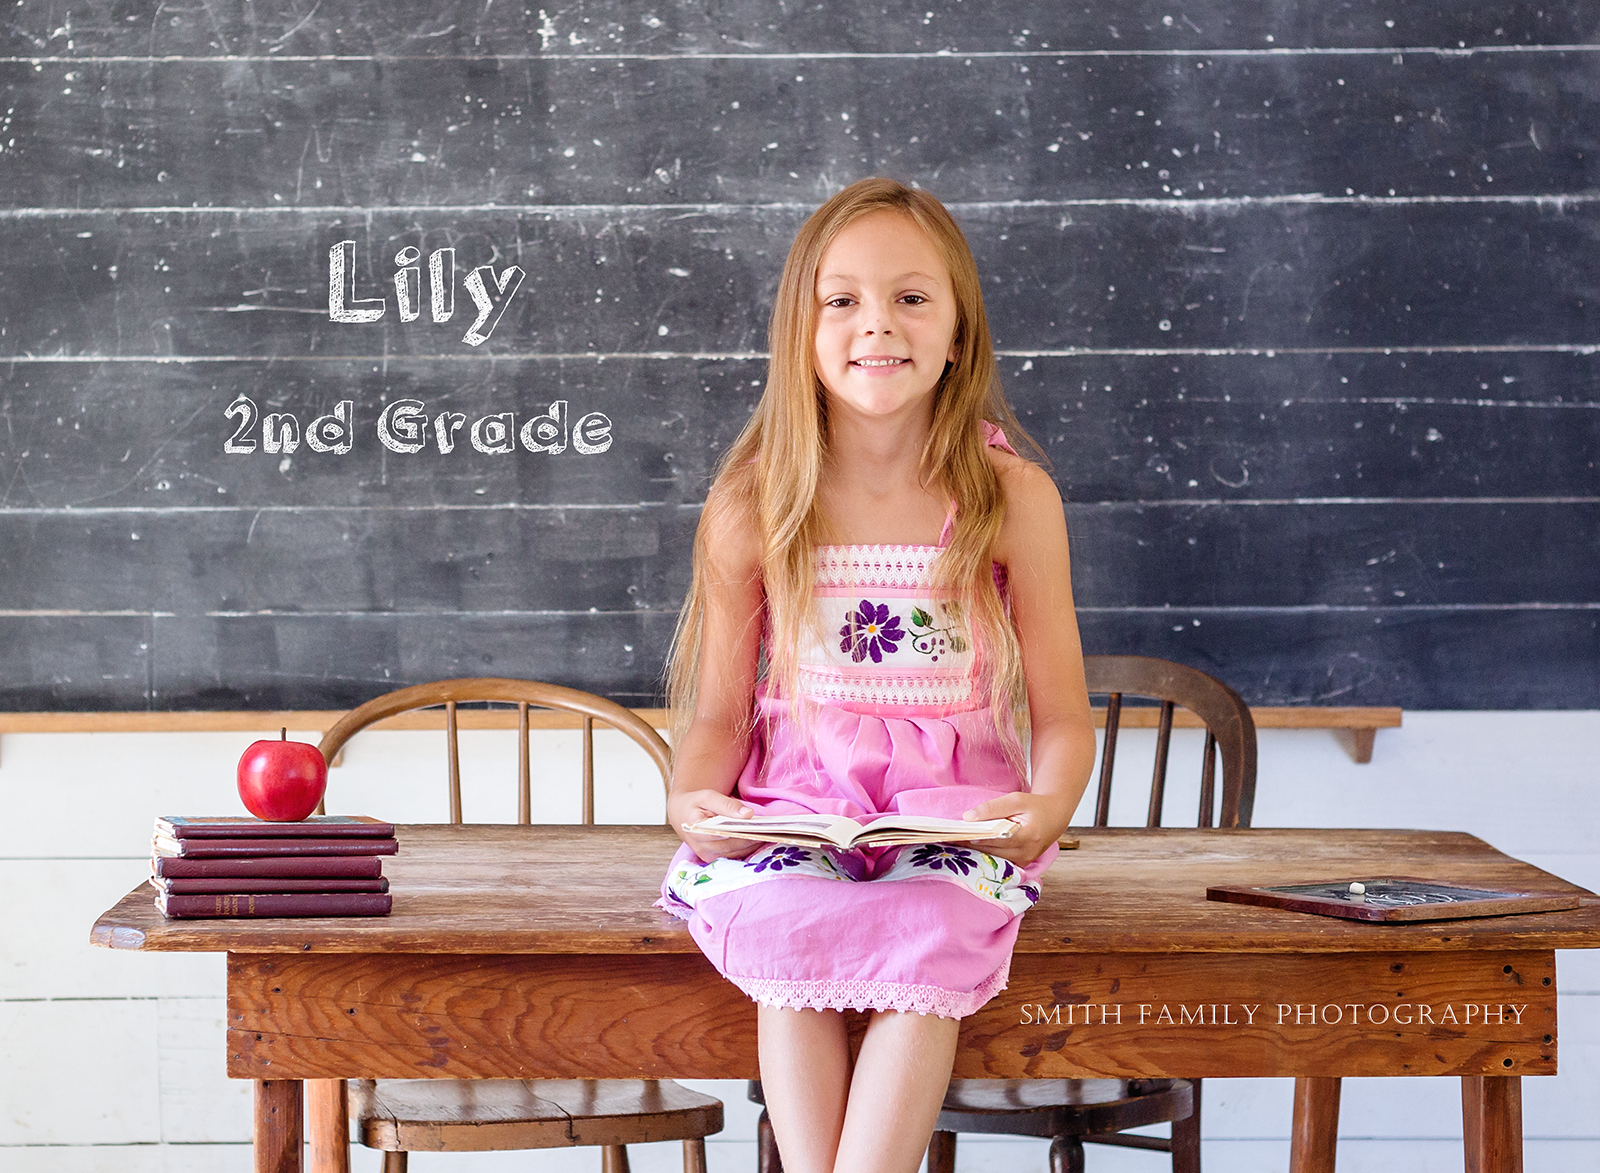 Lily - 7 years old.  First day of 2nd Grade